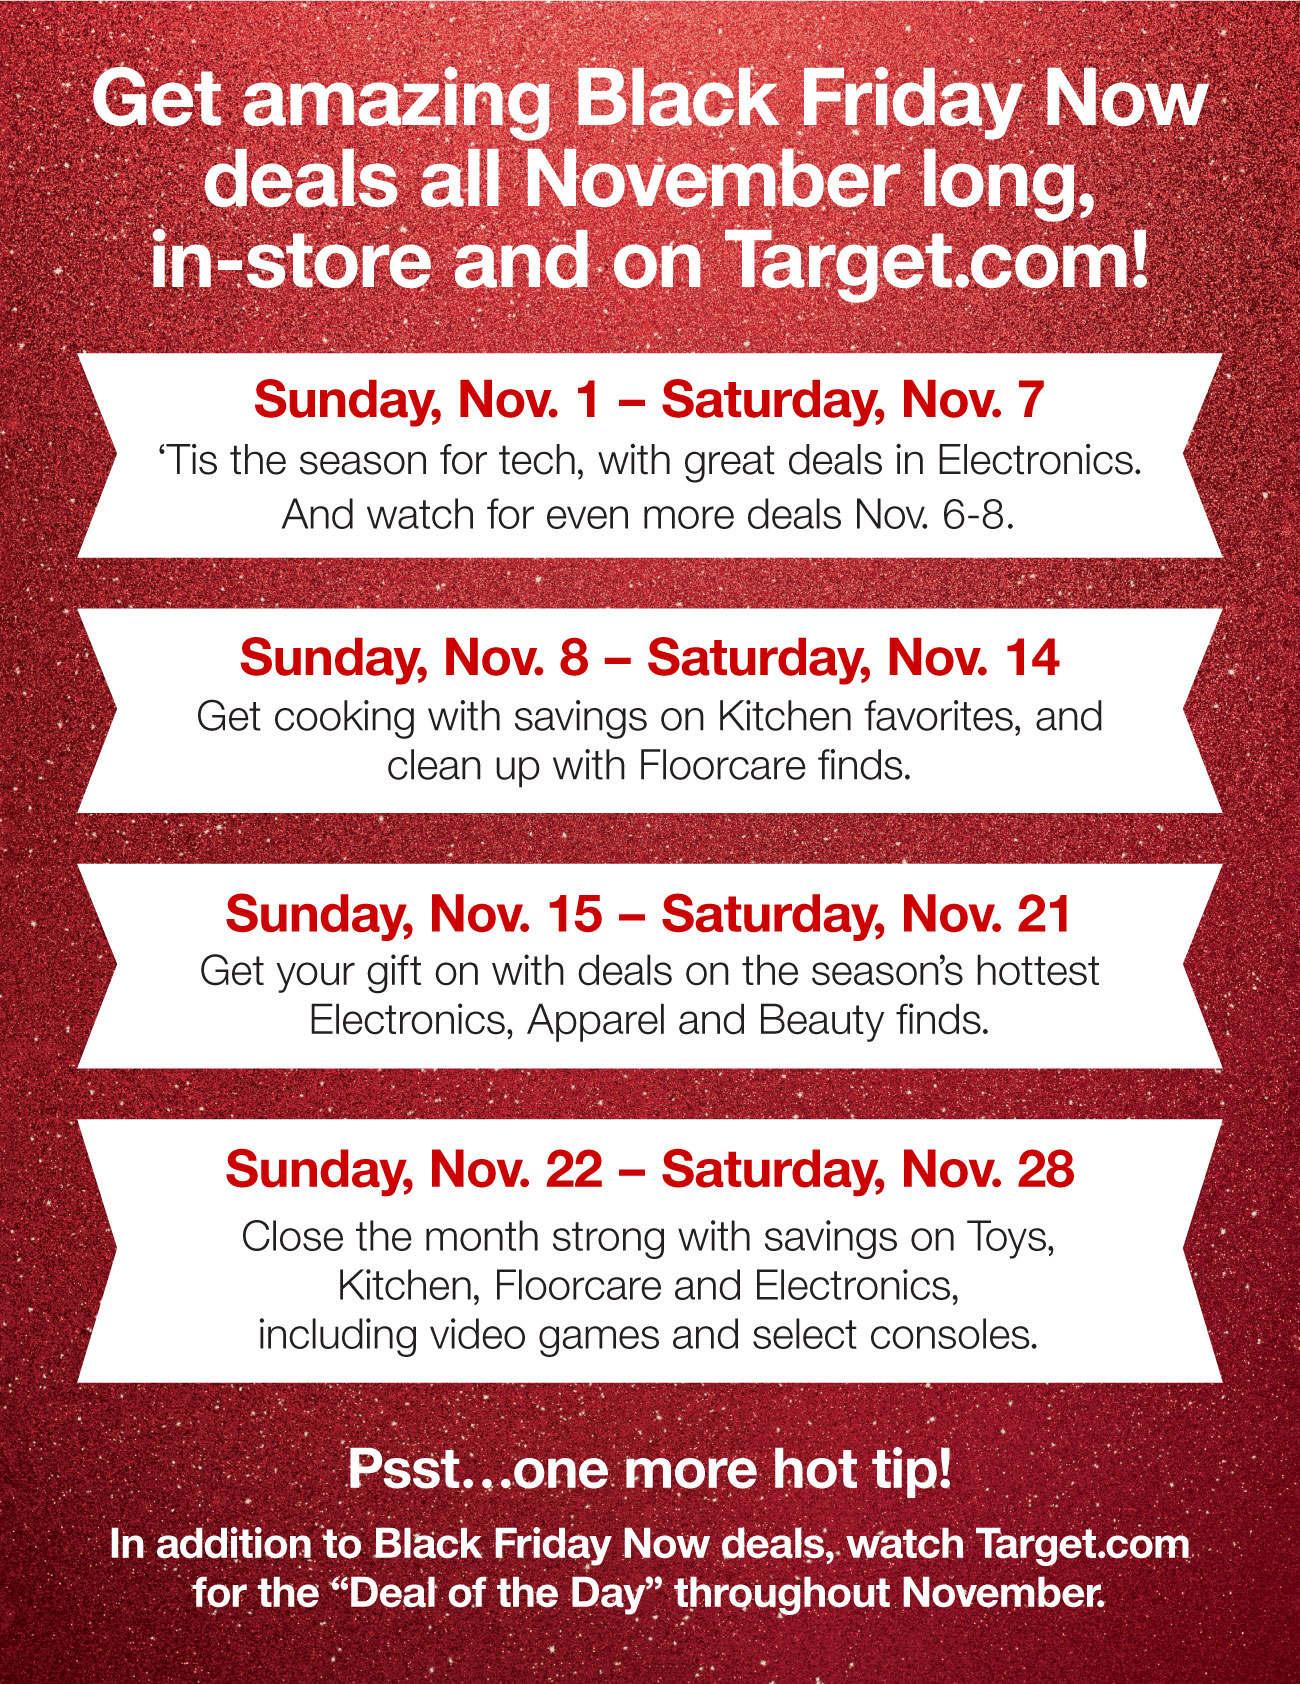 Target Just Revealed The First Of Our Black Friday Now Deals With Lots More Coming All November Long